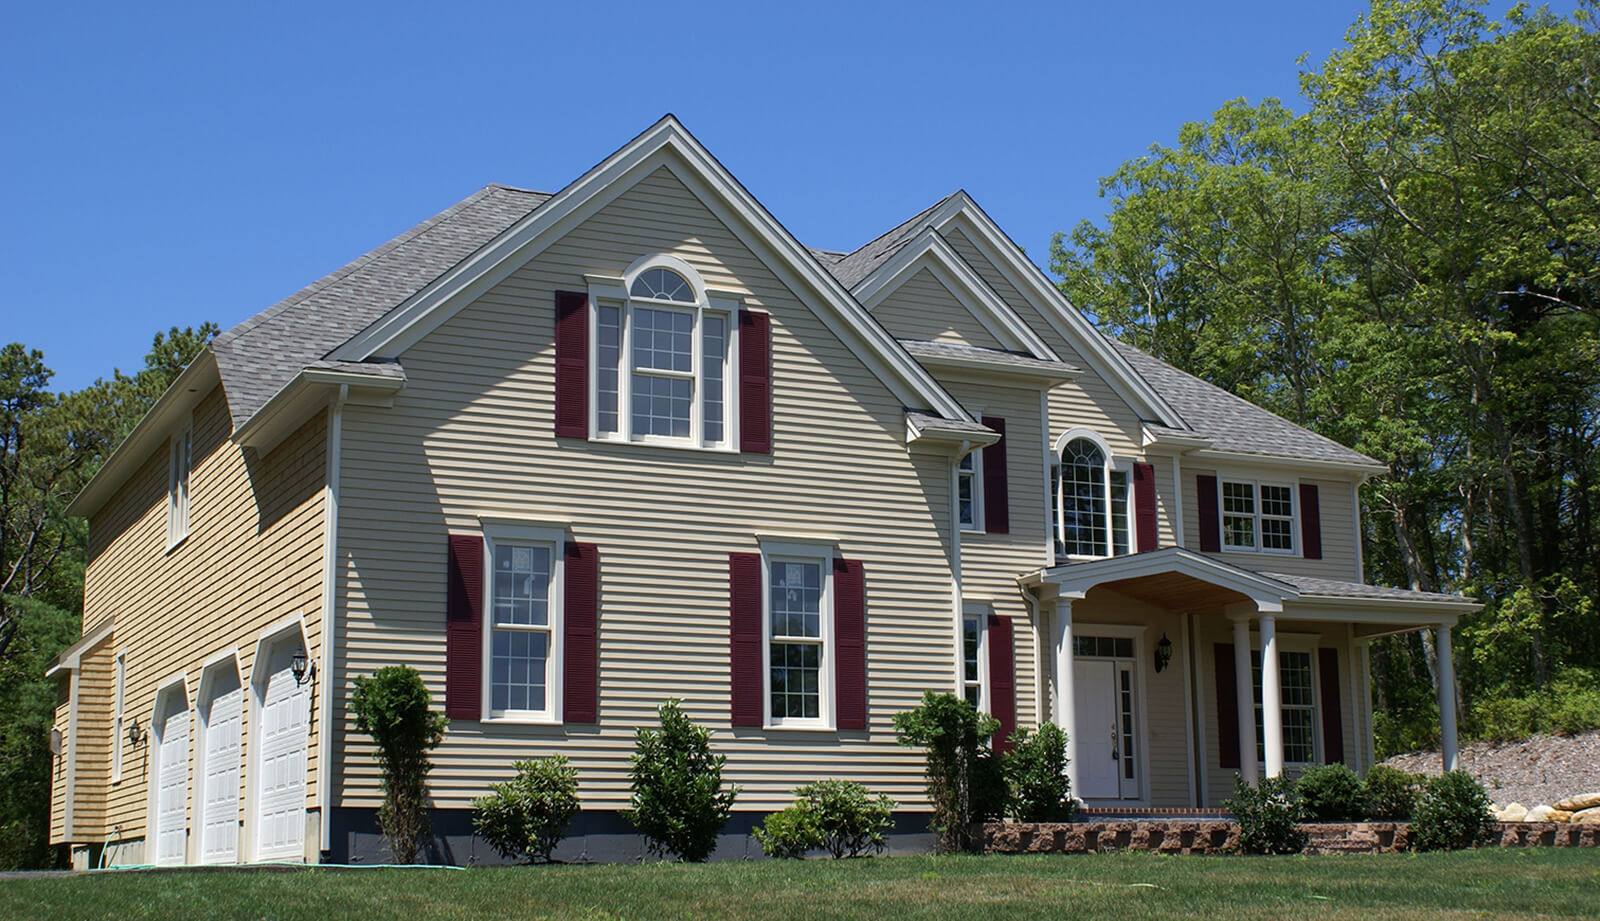 Home Improvement Amp Remodeling Contractors In Long Island